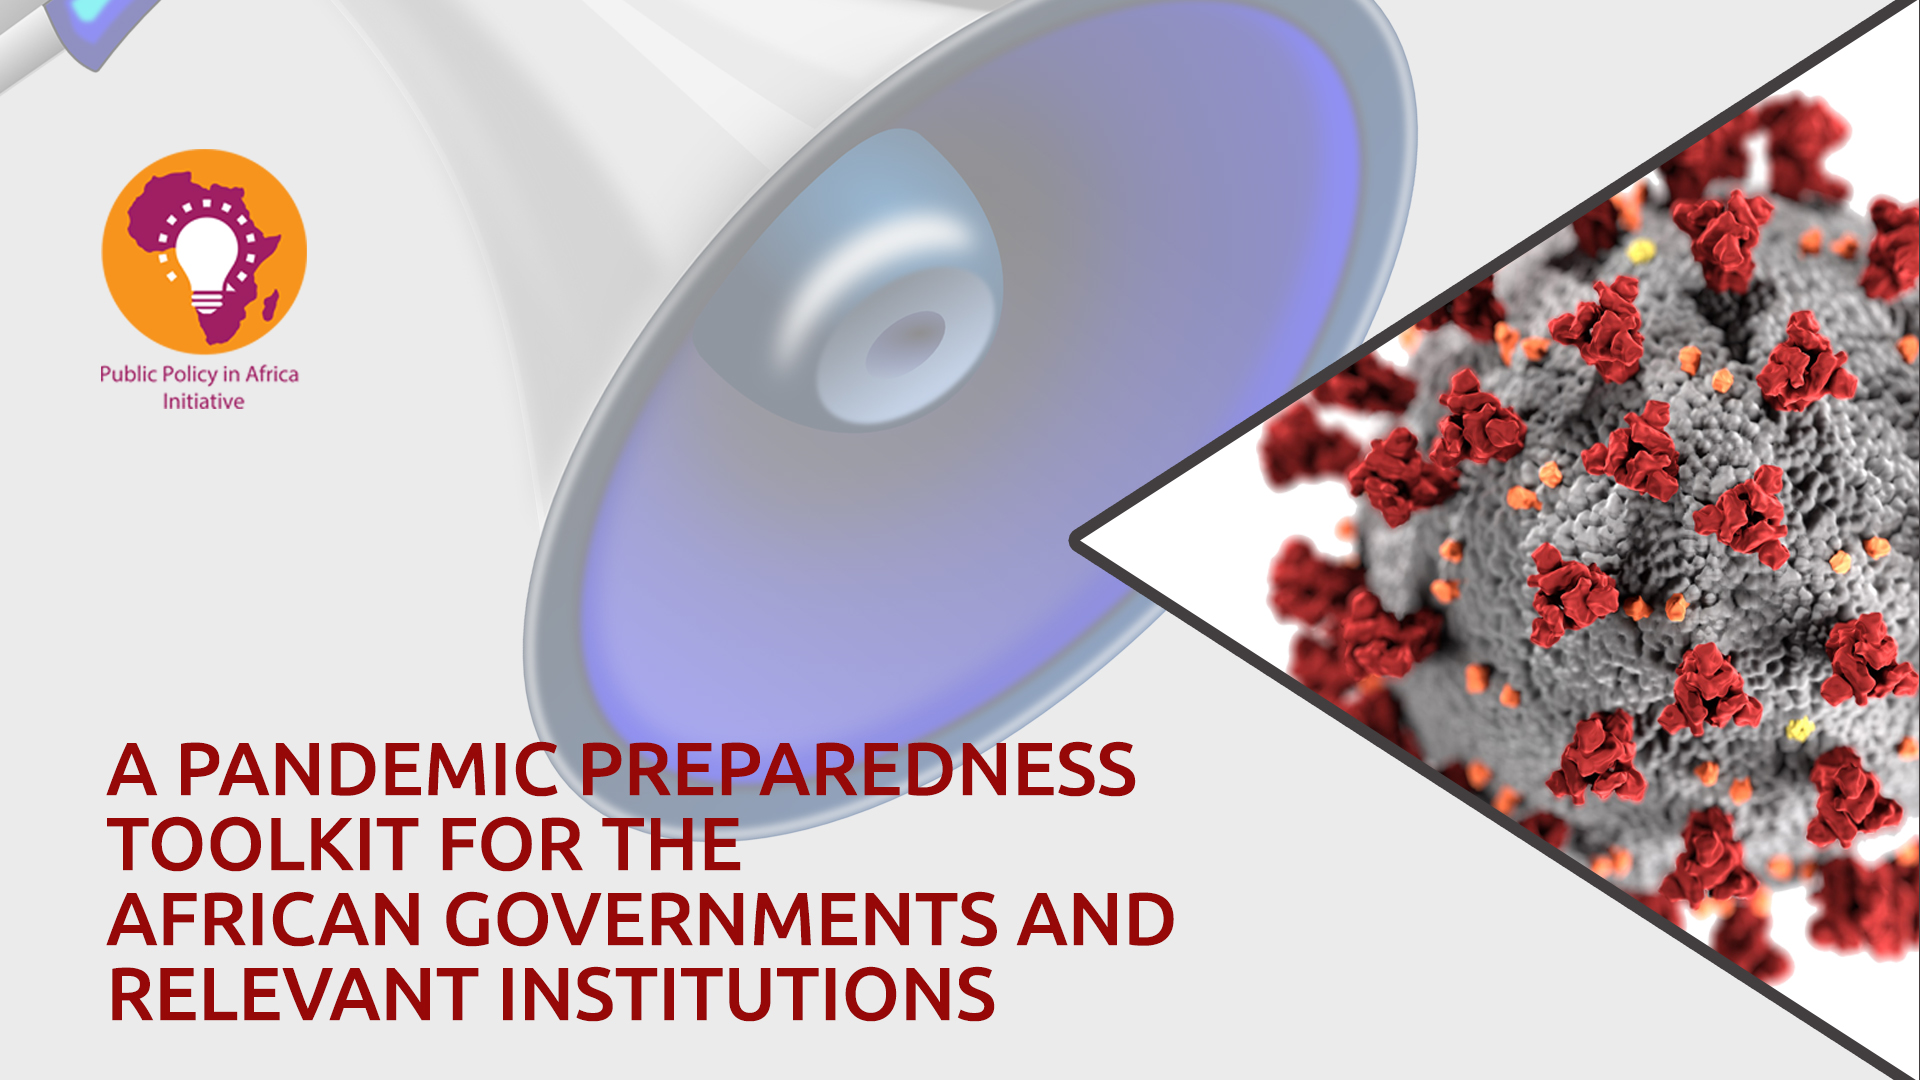 A Pandemic Preparedness Toolkit For The African Governments And Relevant Institutions